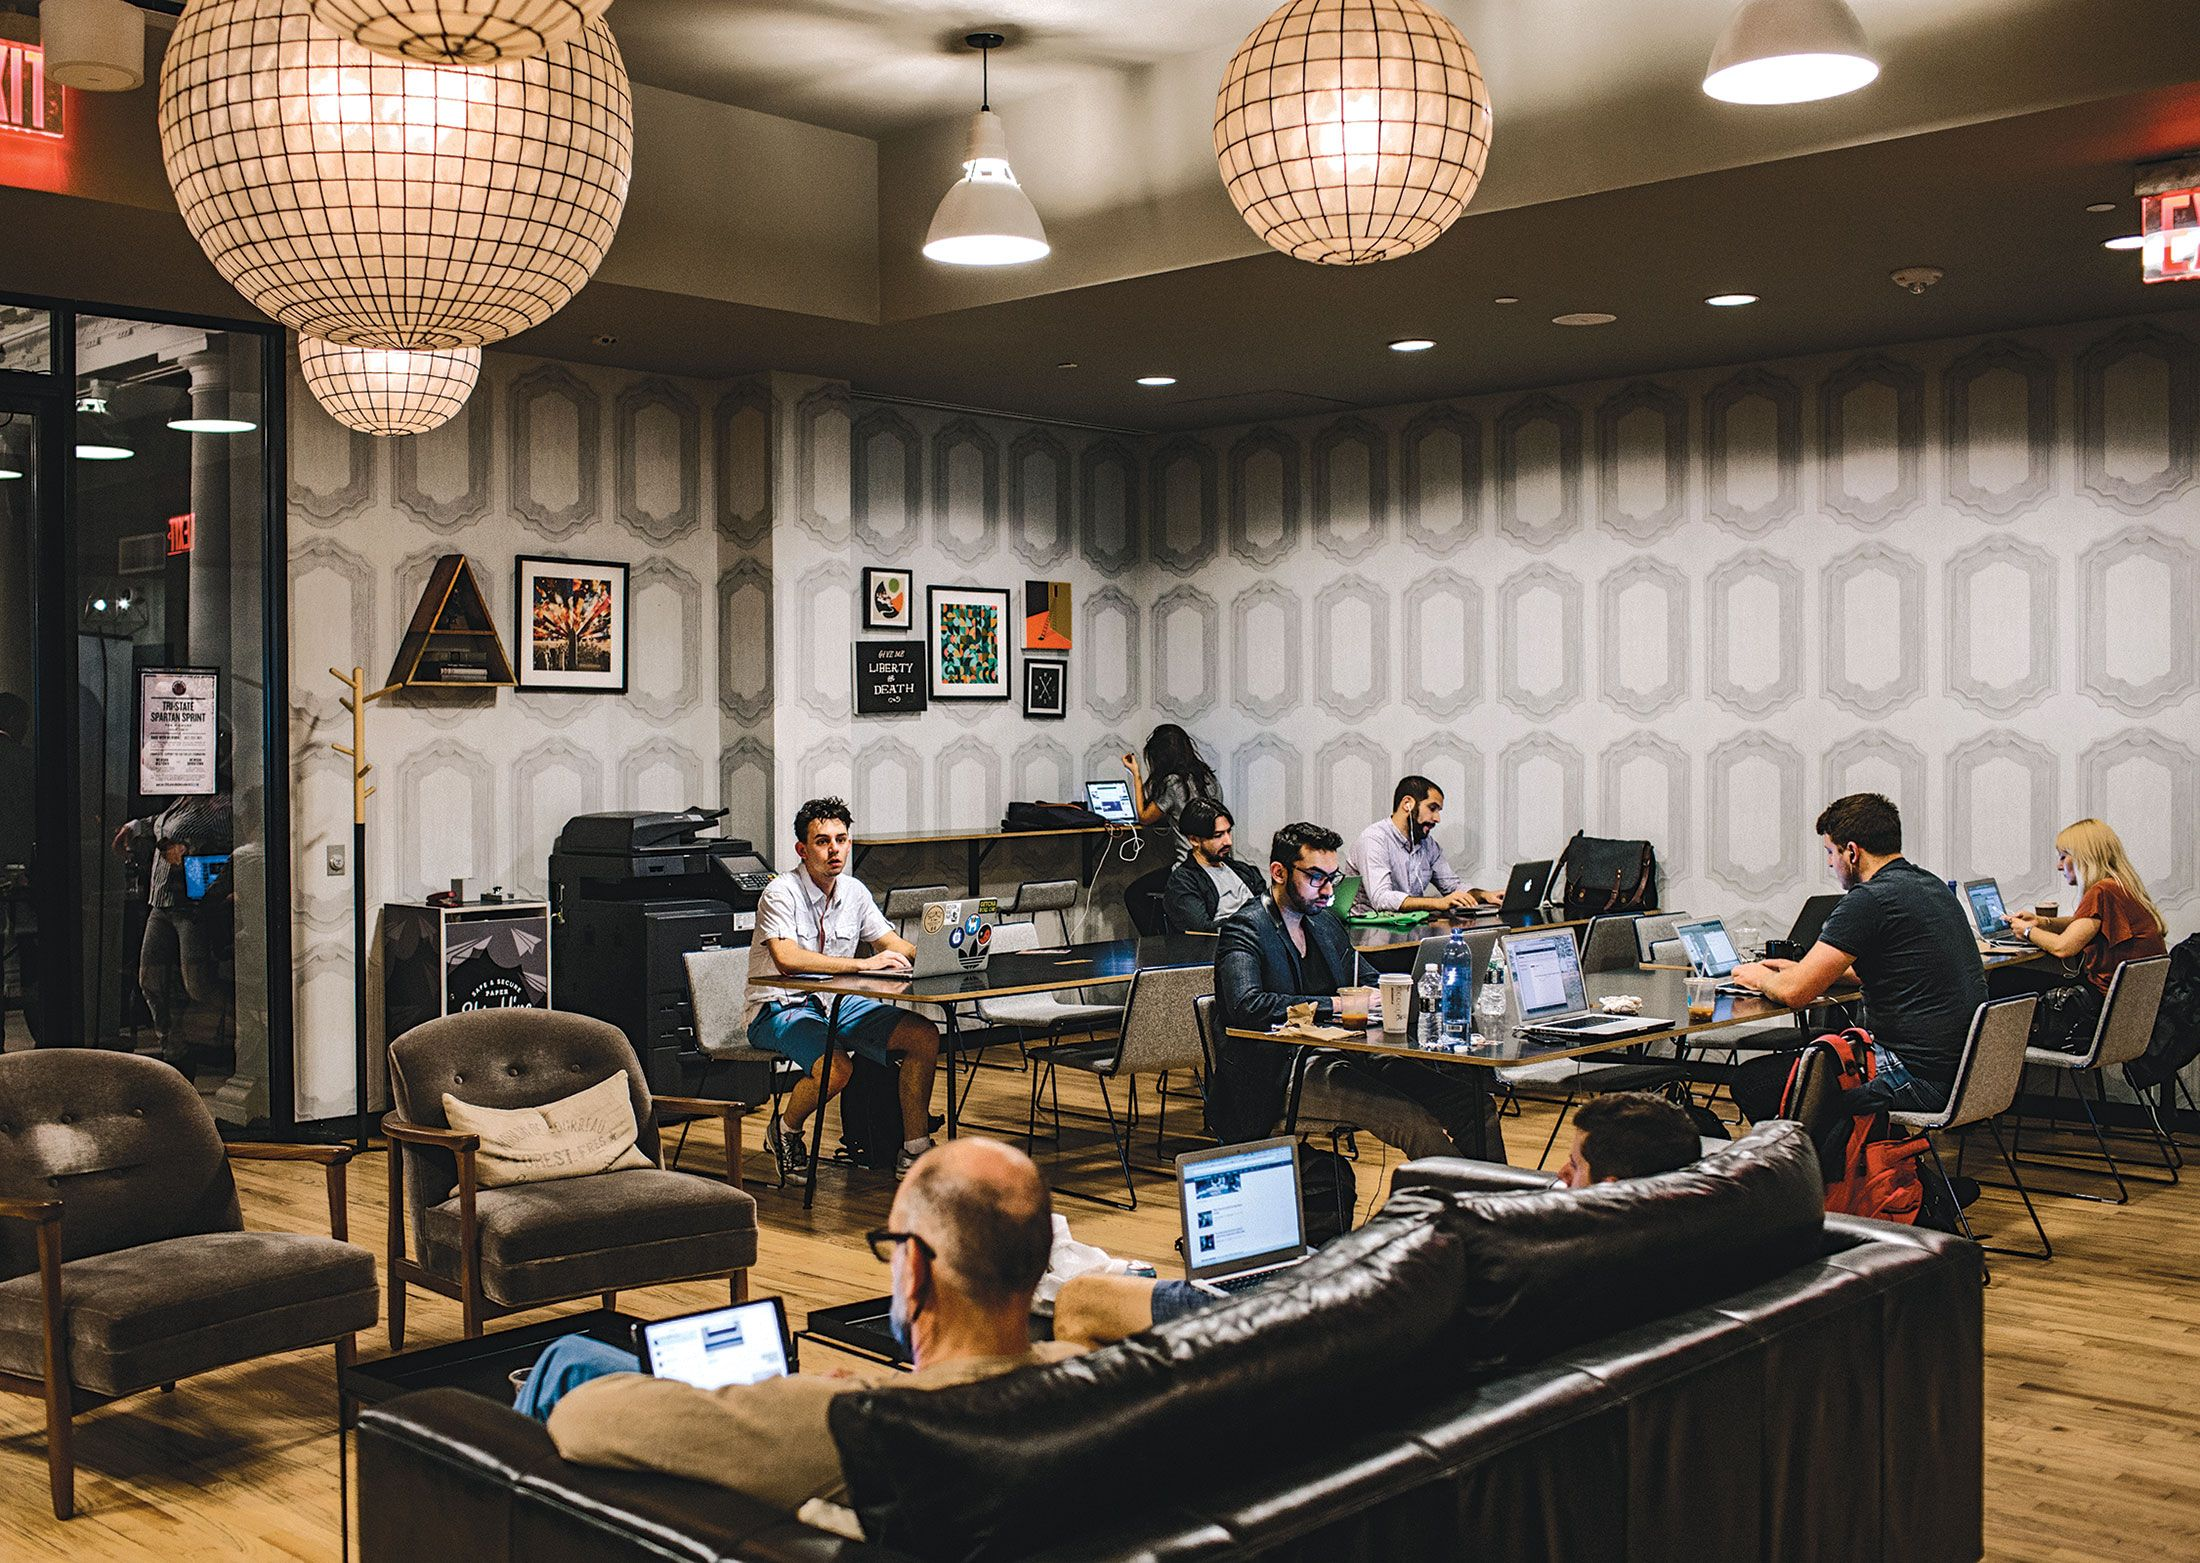 temporary office space minneapolis. WeWork: Real Estate Empire, Or Shared Office Space For A New Era? - Bloomberg Business Temporary Minneapolis